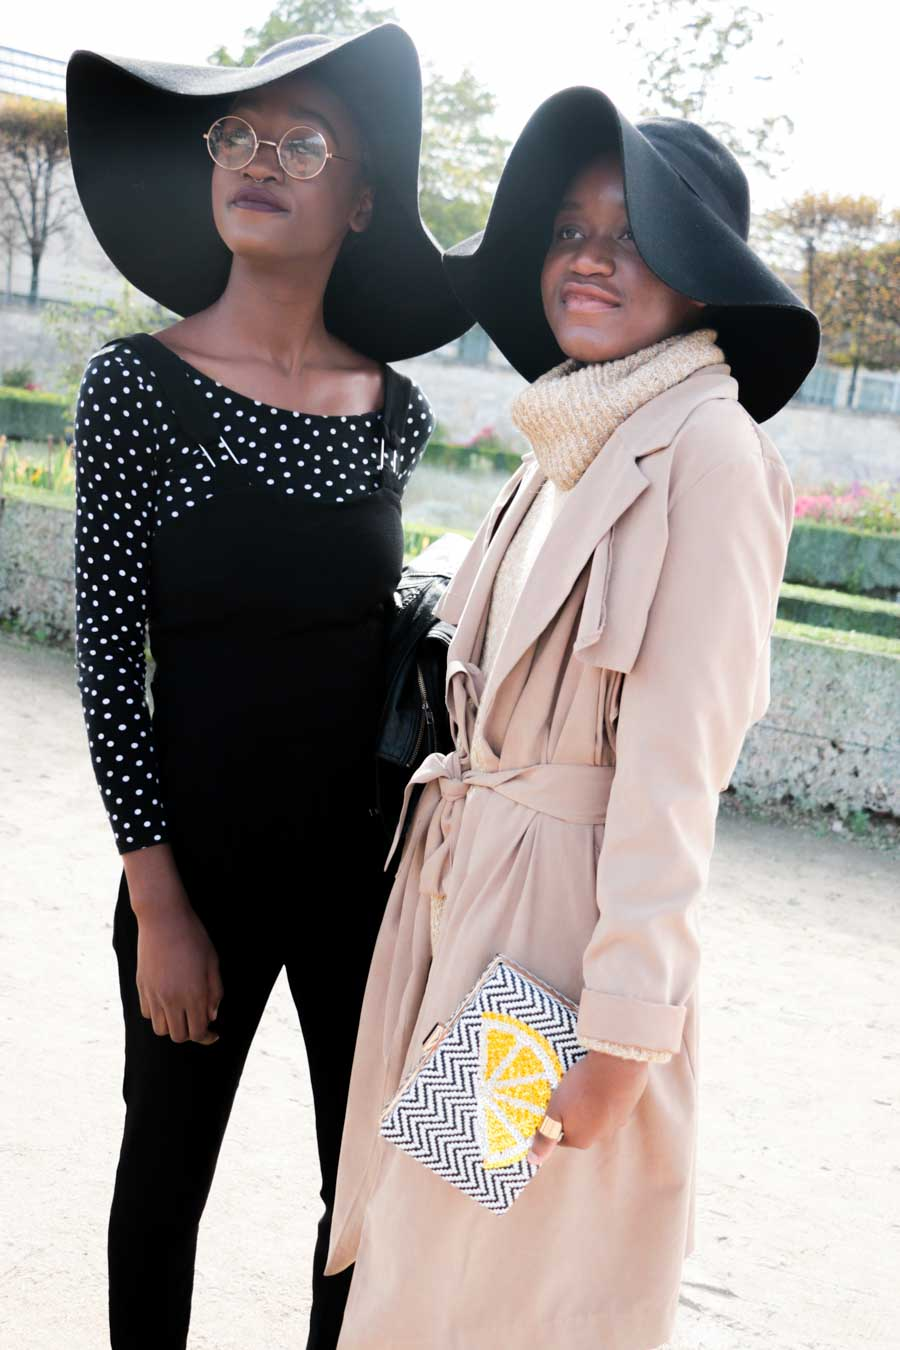 floppy-hats-paris-street-style-1